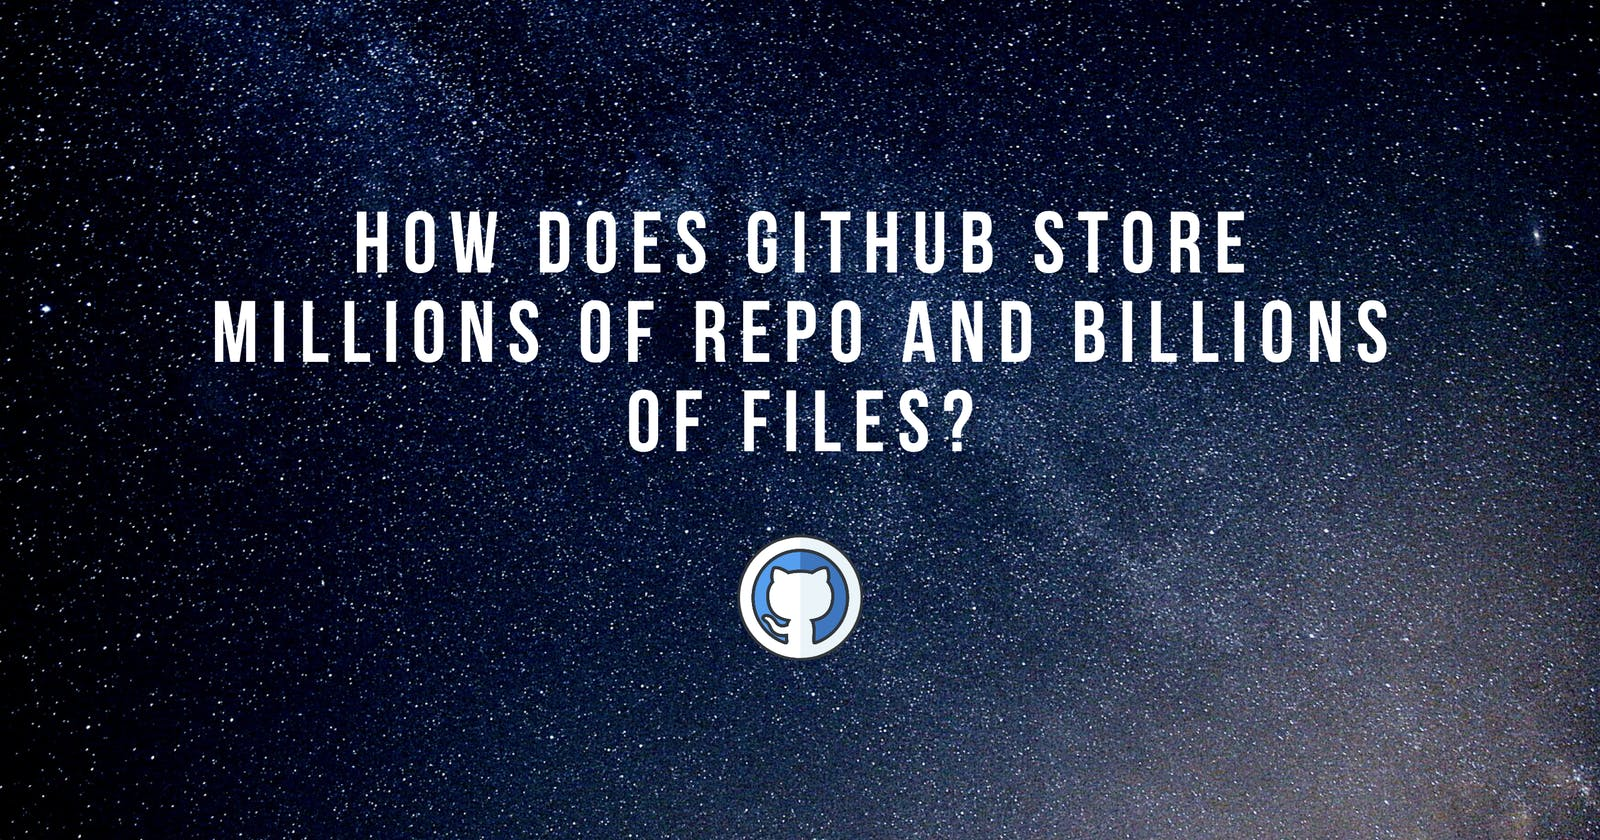 How does Github store millions of repo and billions of files?